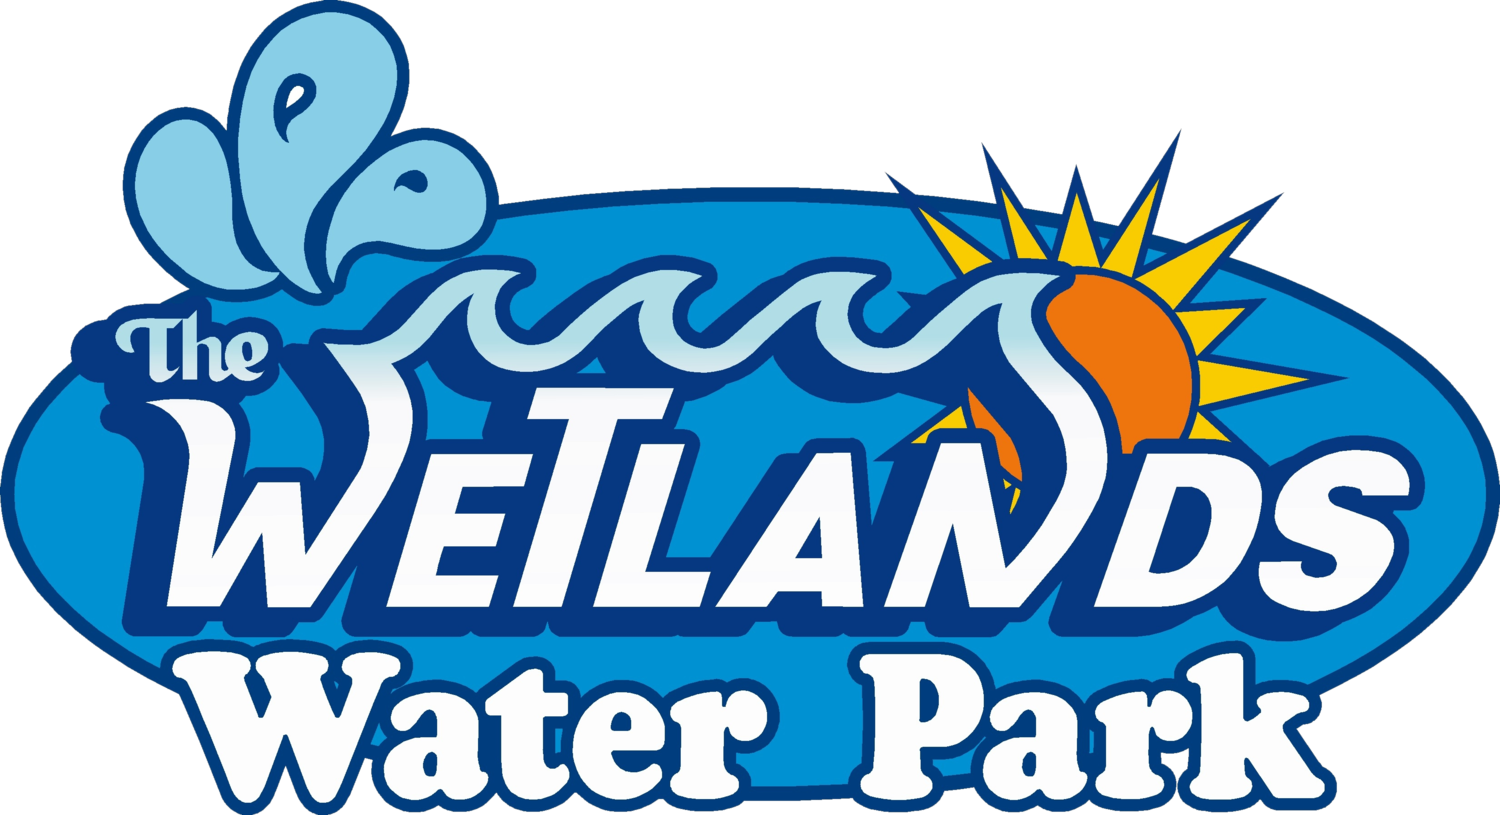 The Wetlands Water Park